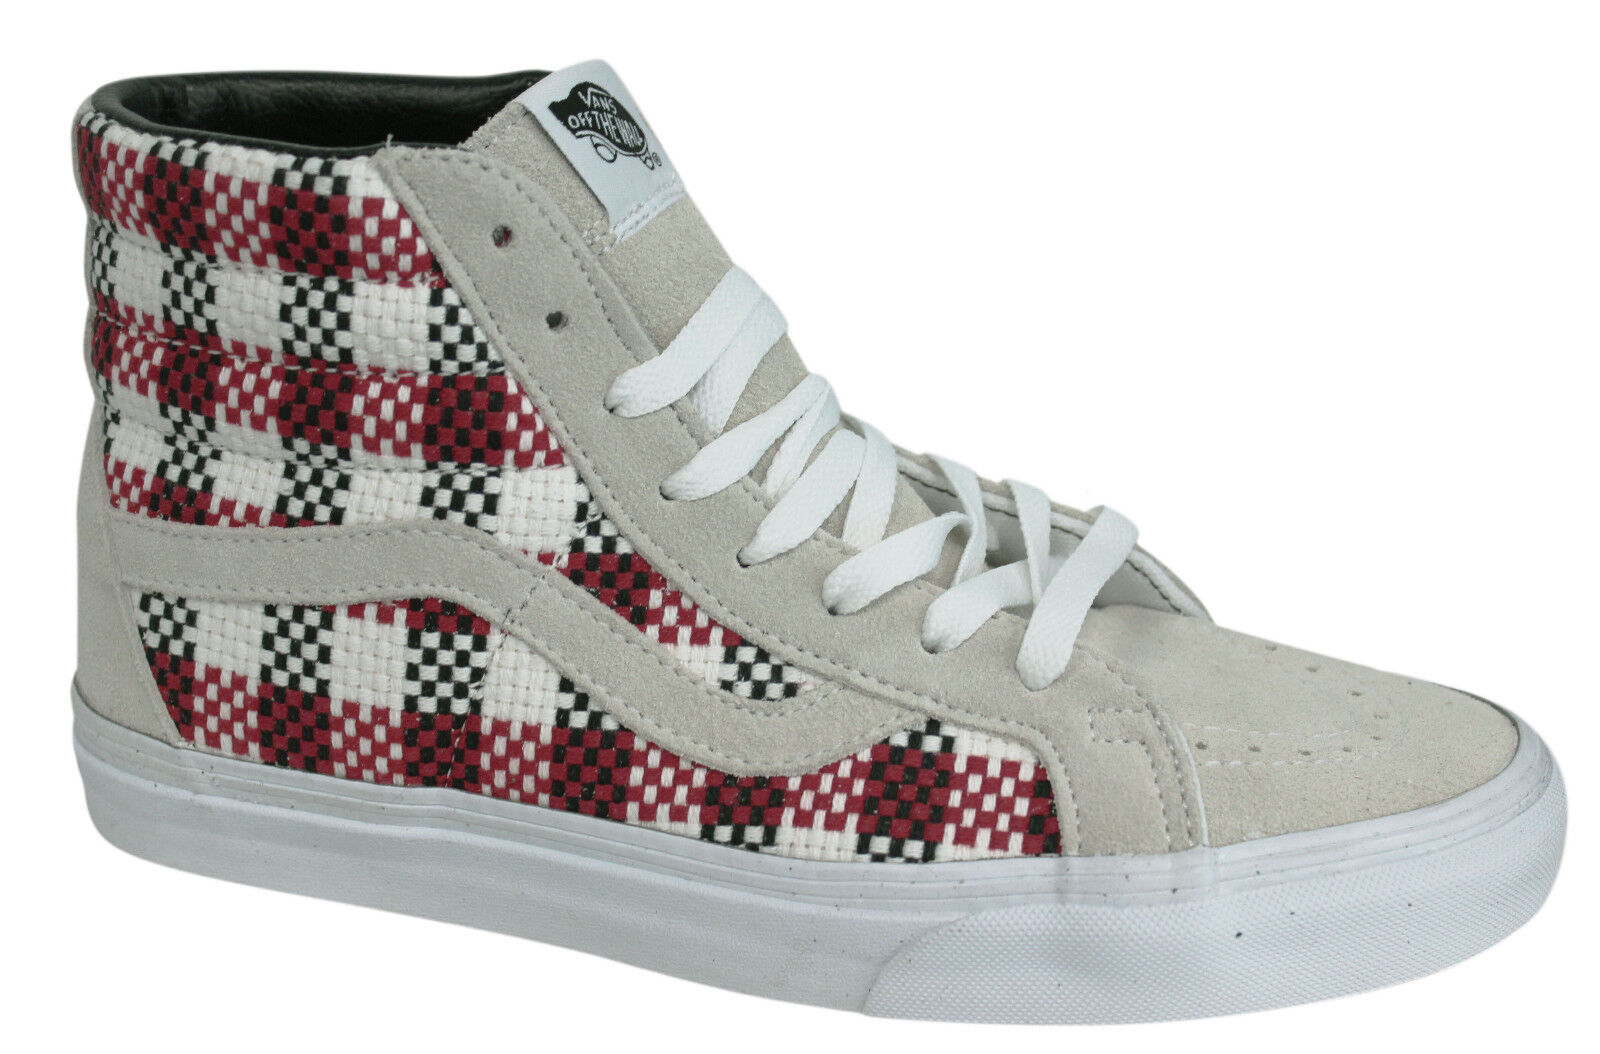 Vans Off The Wall SK8-Hi Lace Up Checker Plaid High Top Trainers 3CAFGO U119